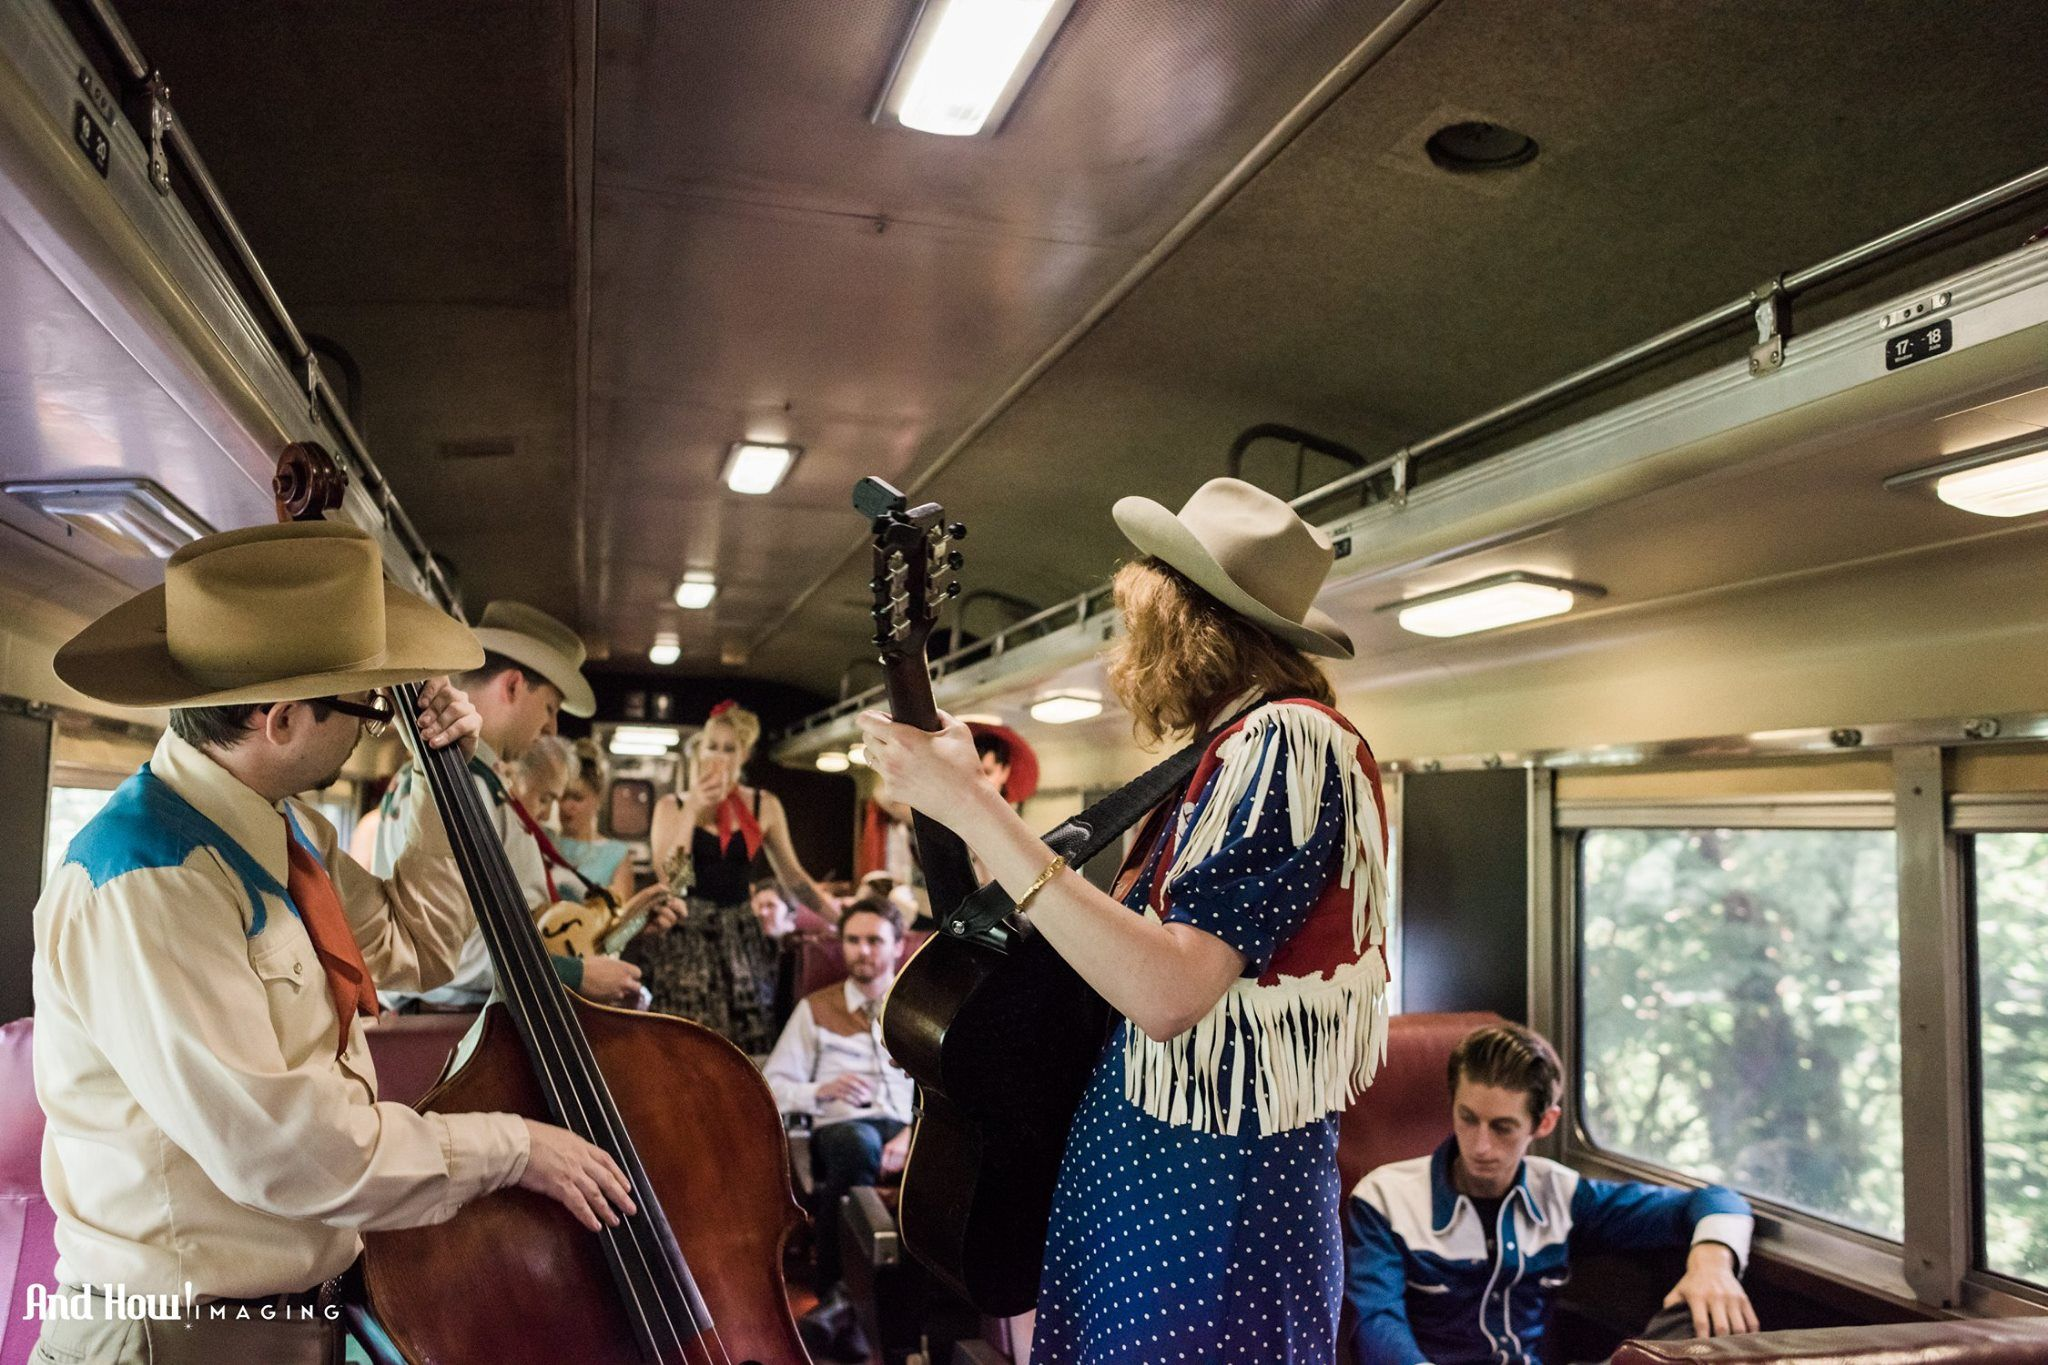 All Aboard: This Music Festival Takes Place on a Vintage 1950s Train